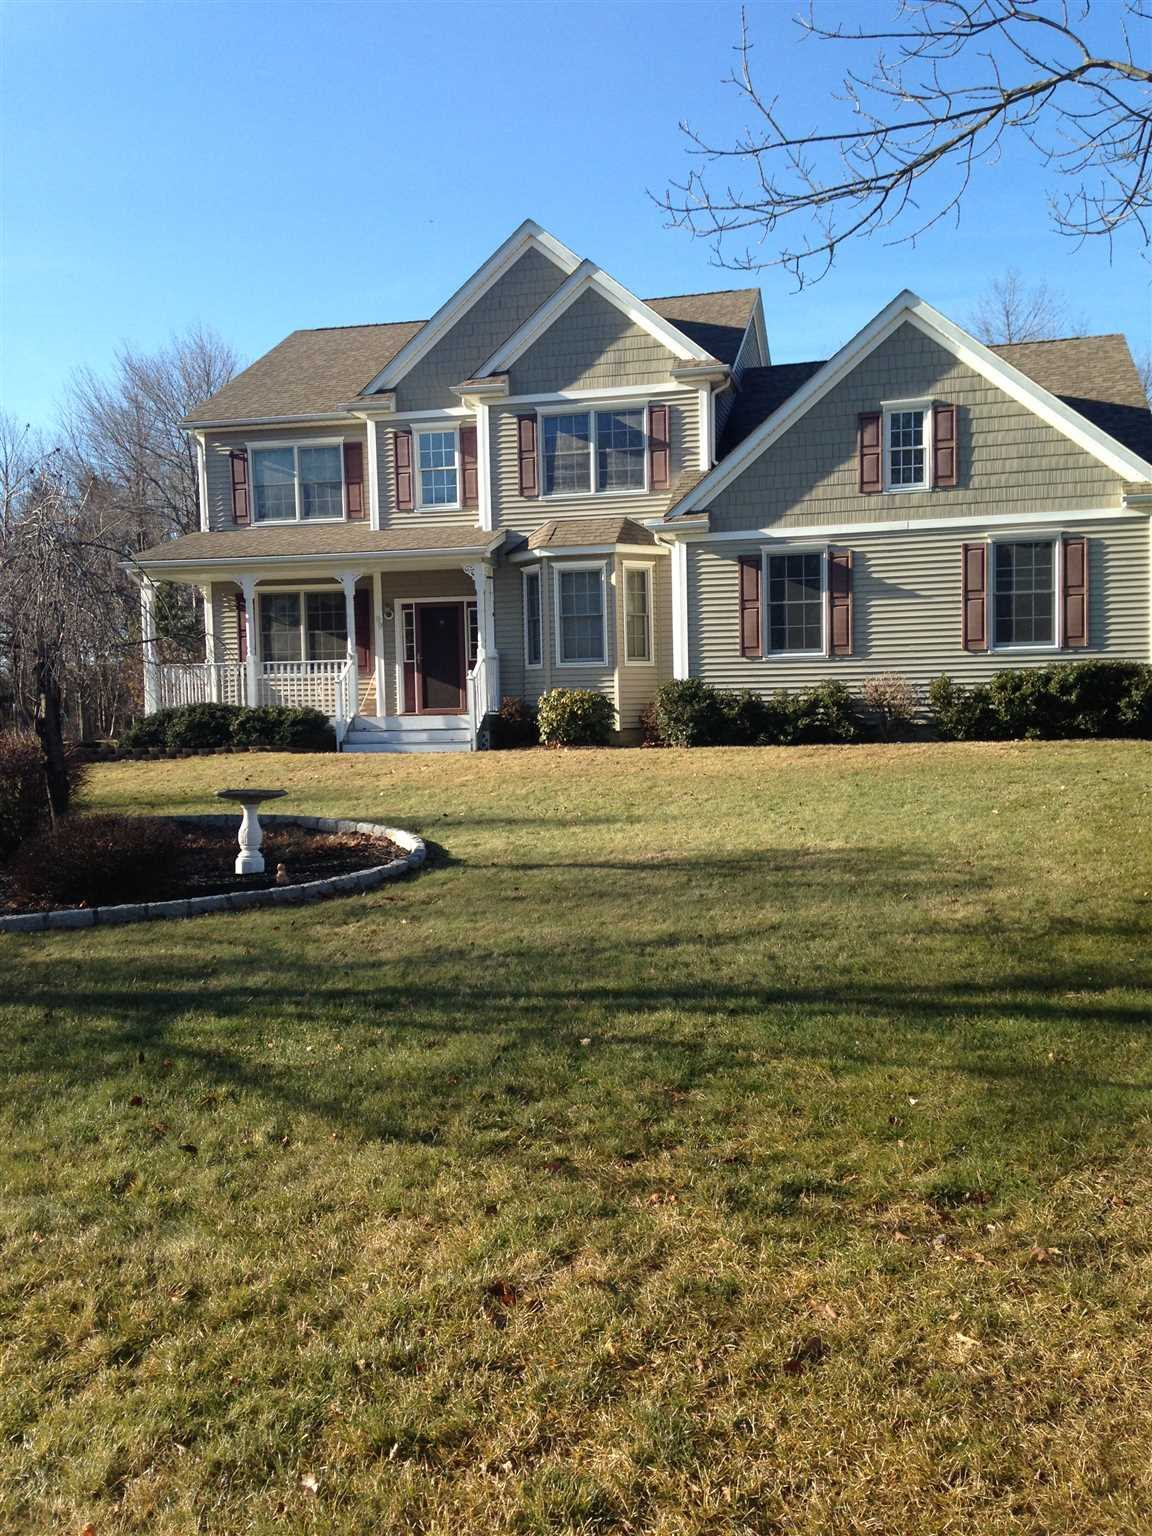 Single Family Home for Sale at 99 SAGAMOR Drive 99 SAGAMOR Drive East Fishkill, New York 12533 United States